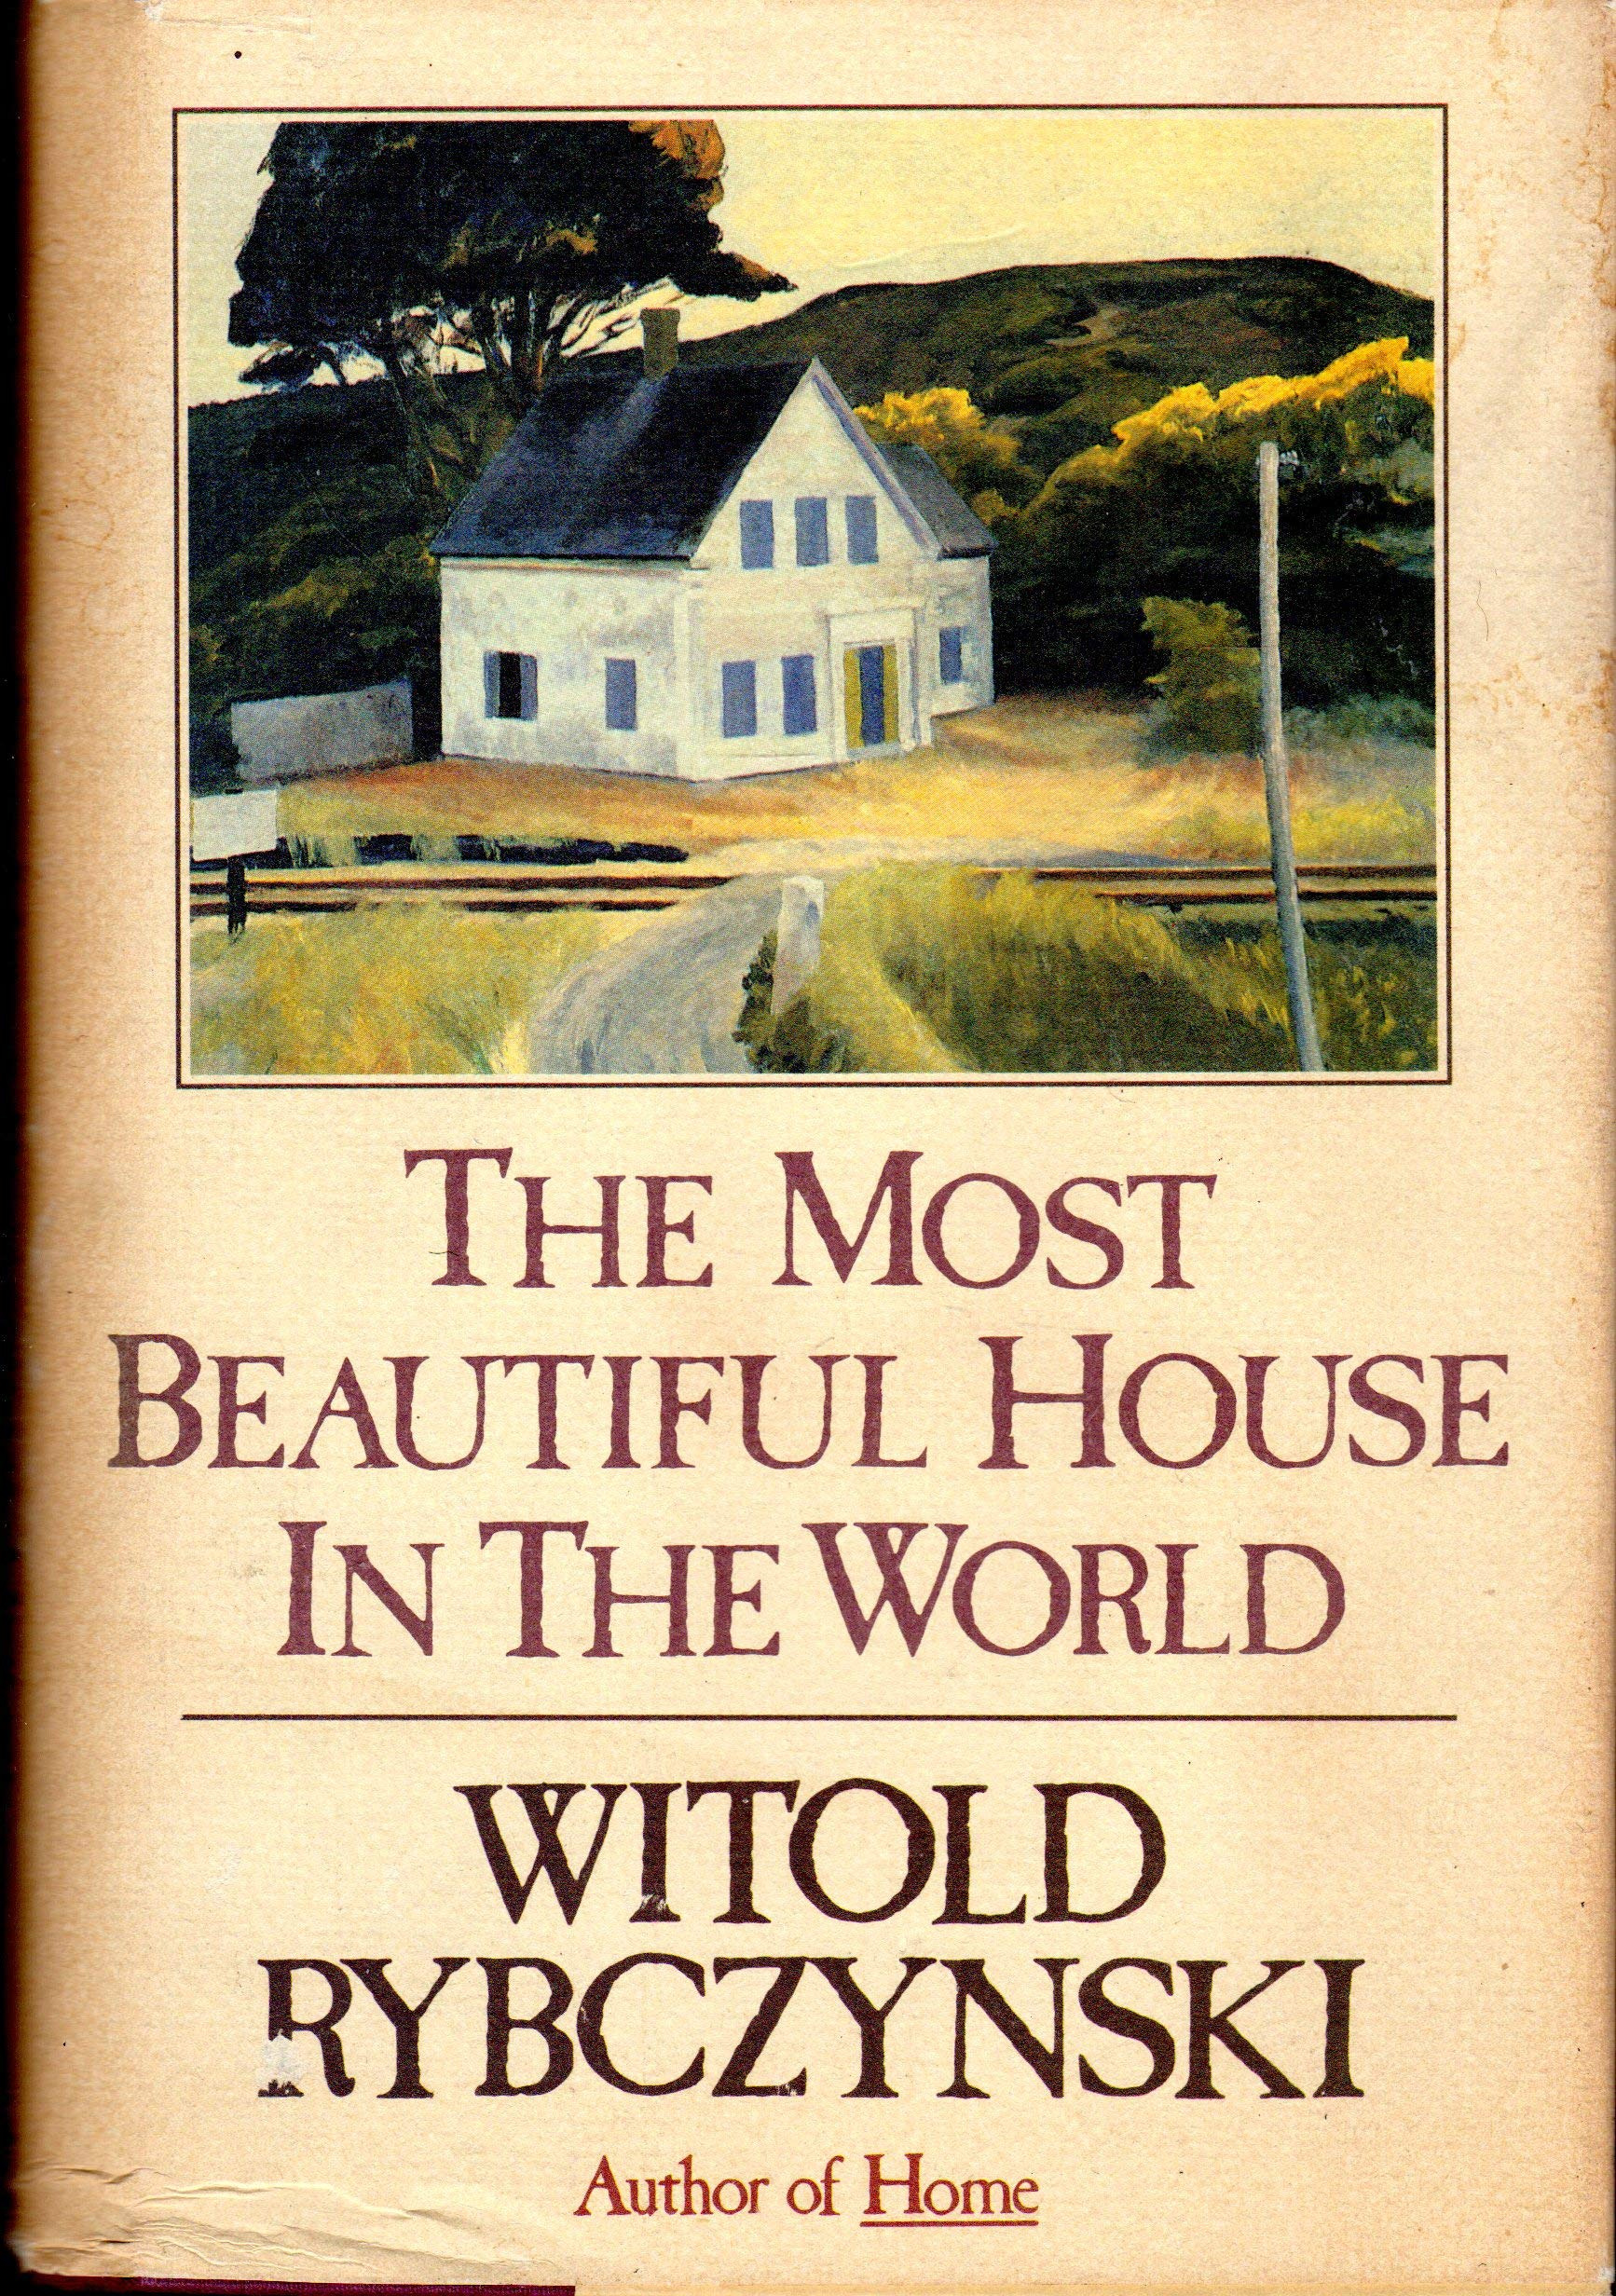 The Beautiful House In World Unique the Most Beautiful House In the World Amazon Witold